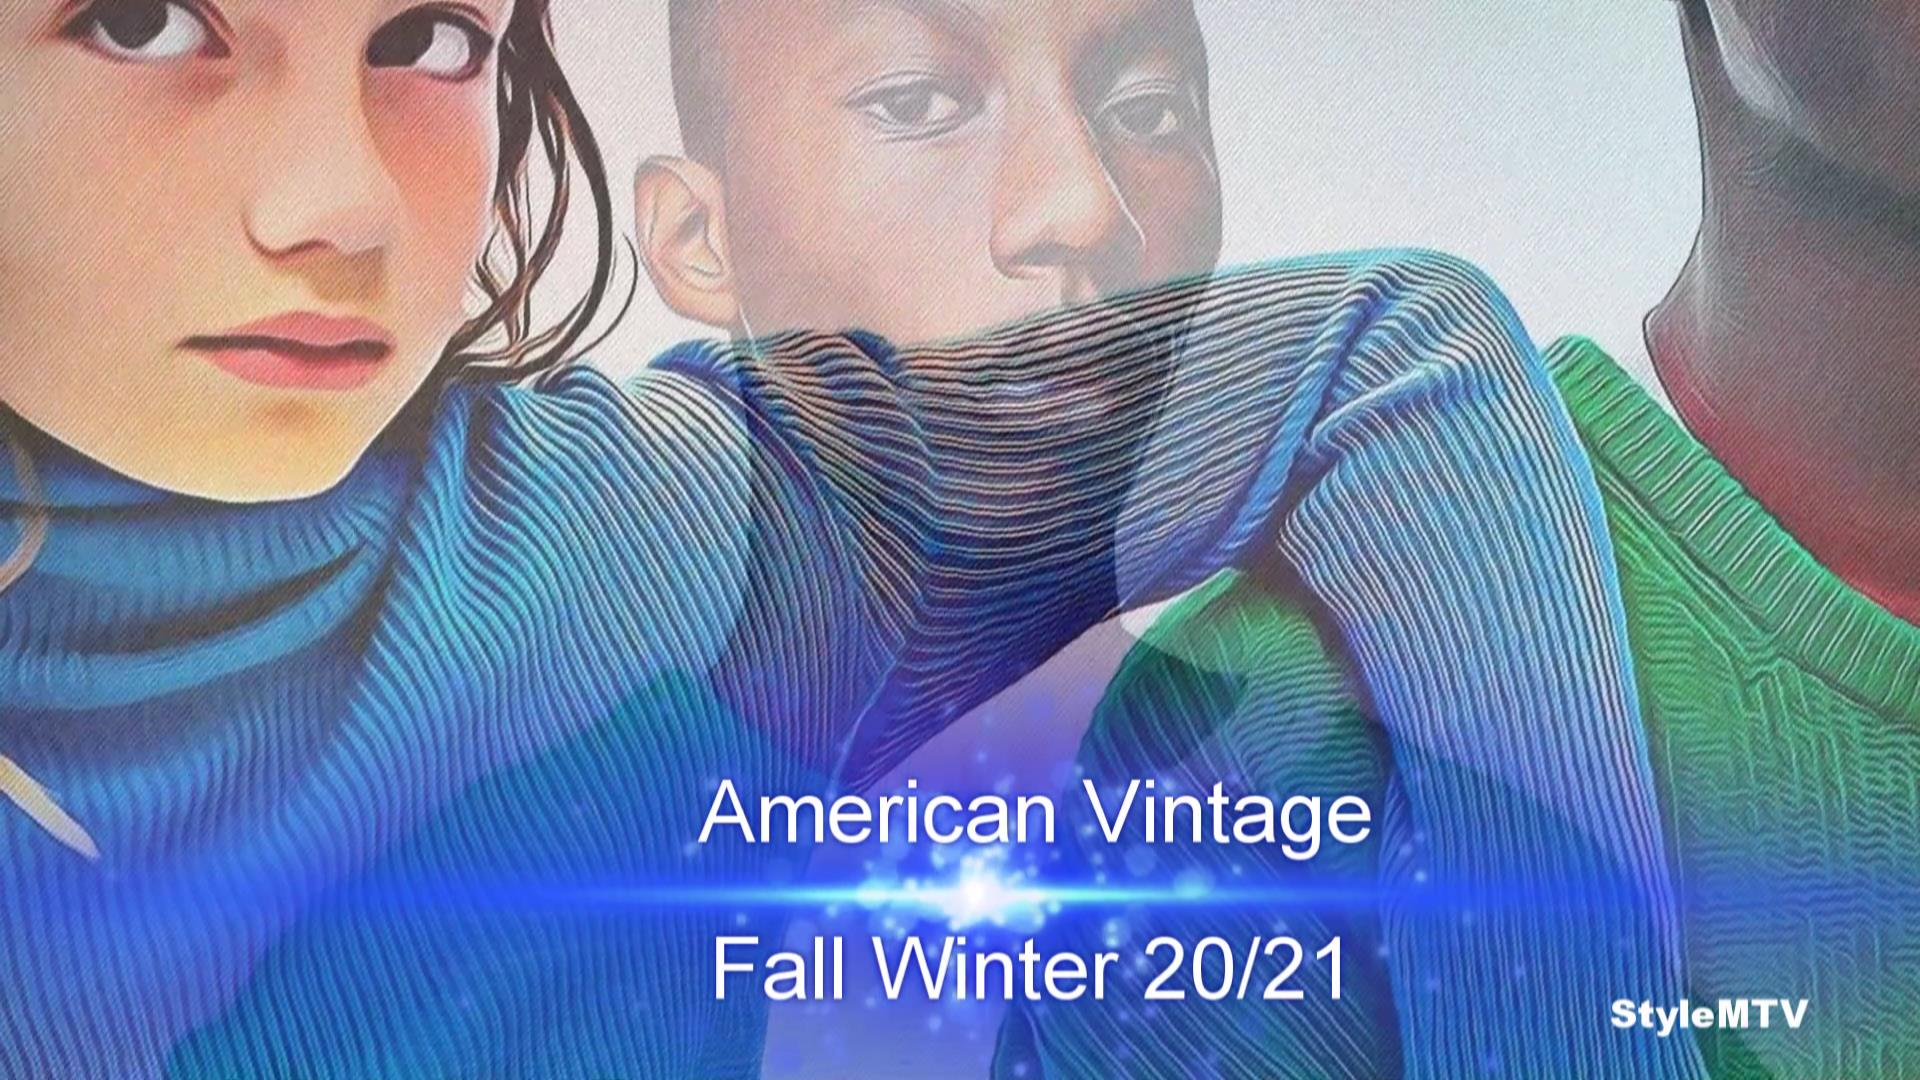 American Vintage Fall Winter 20-21 Art